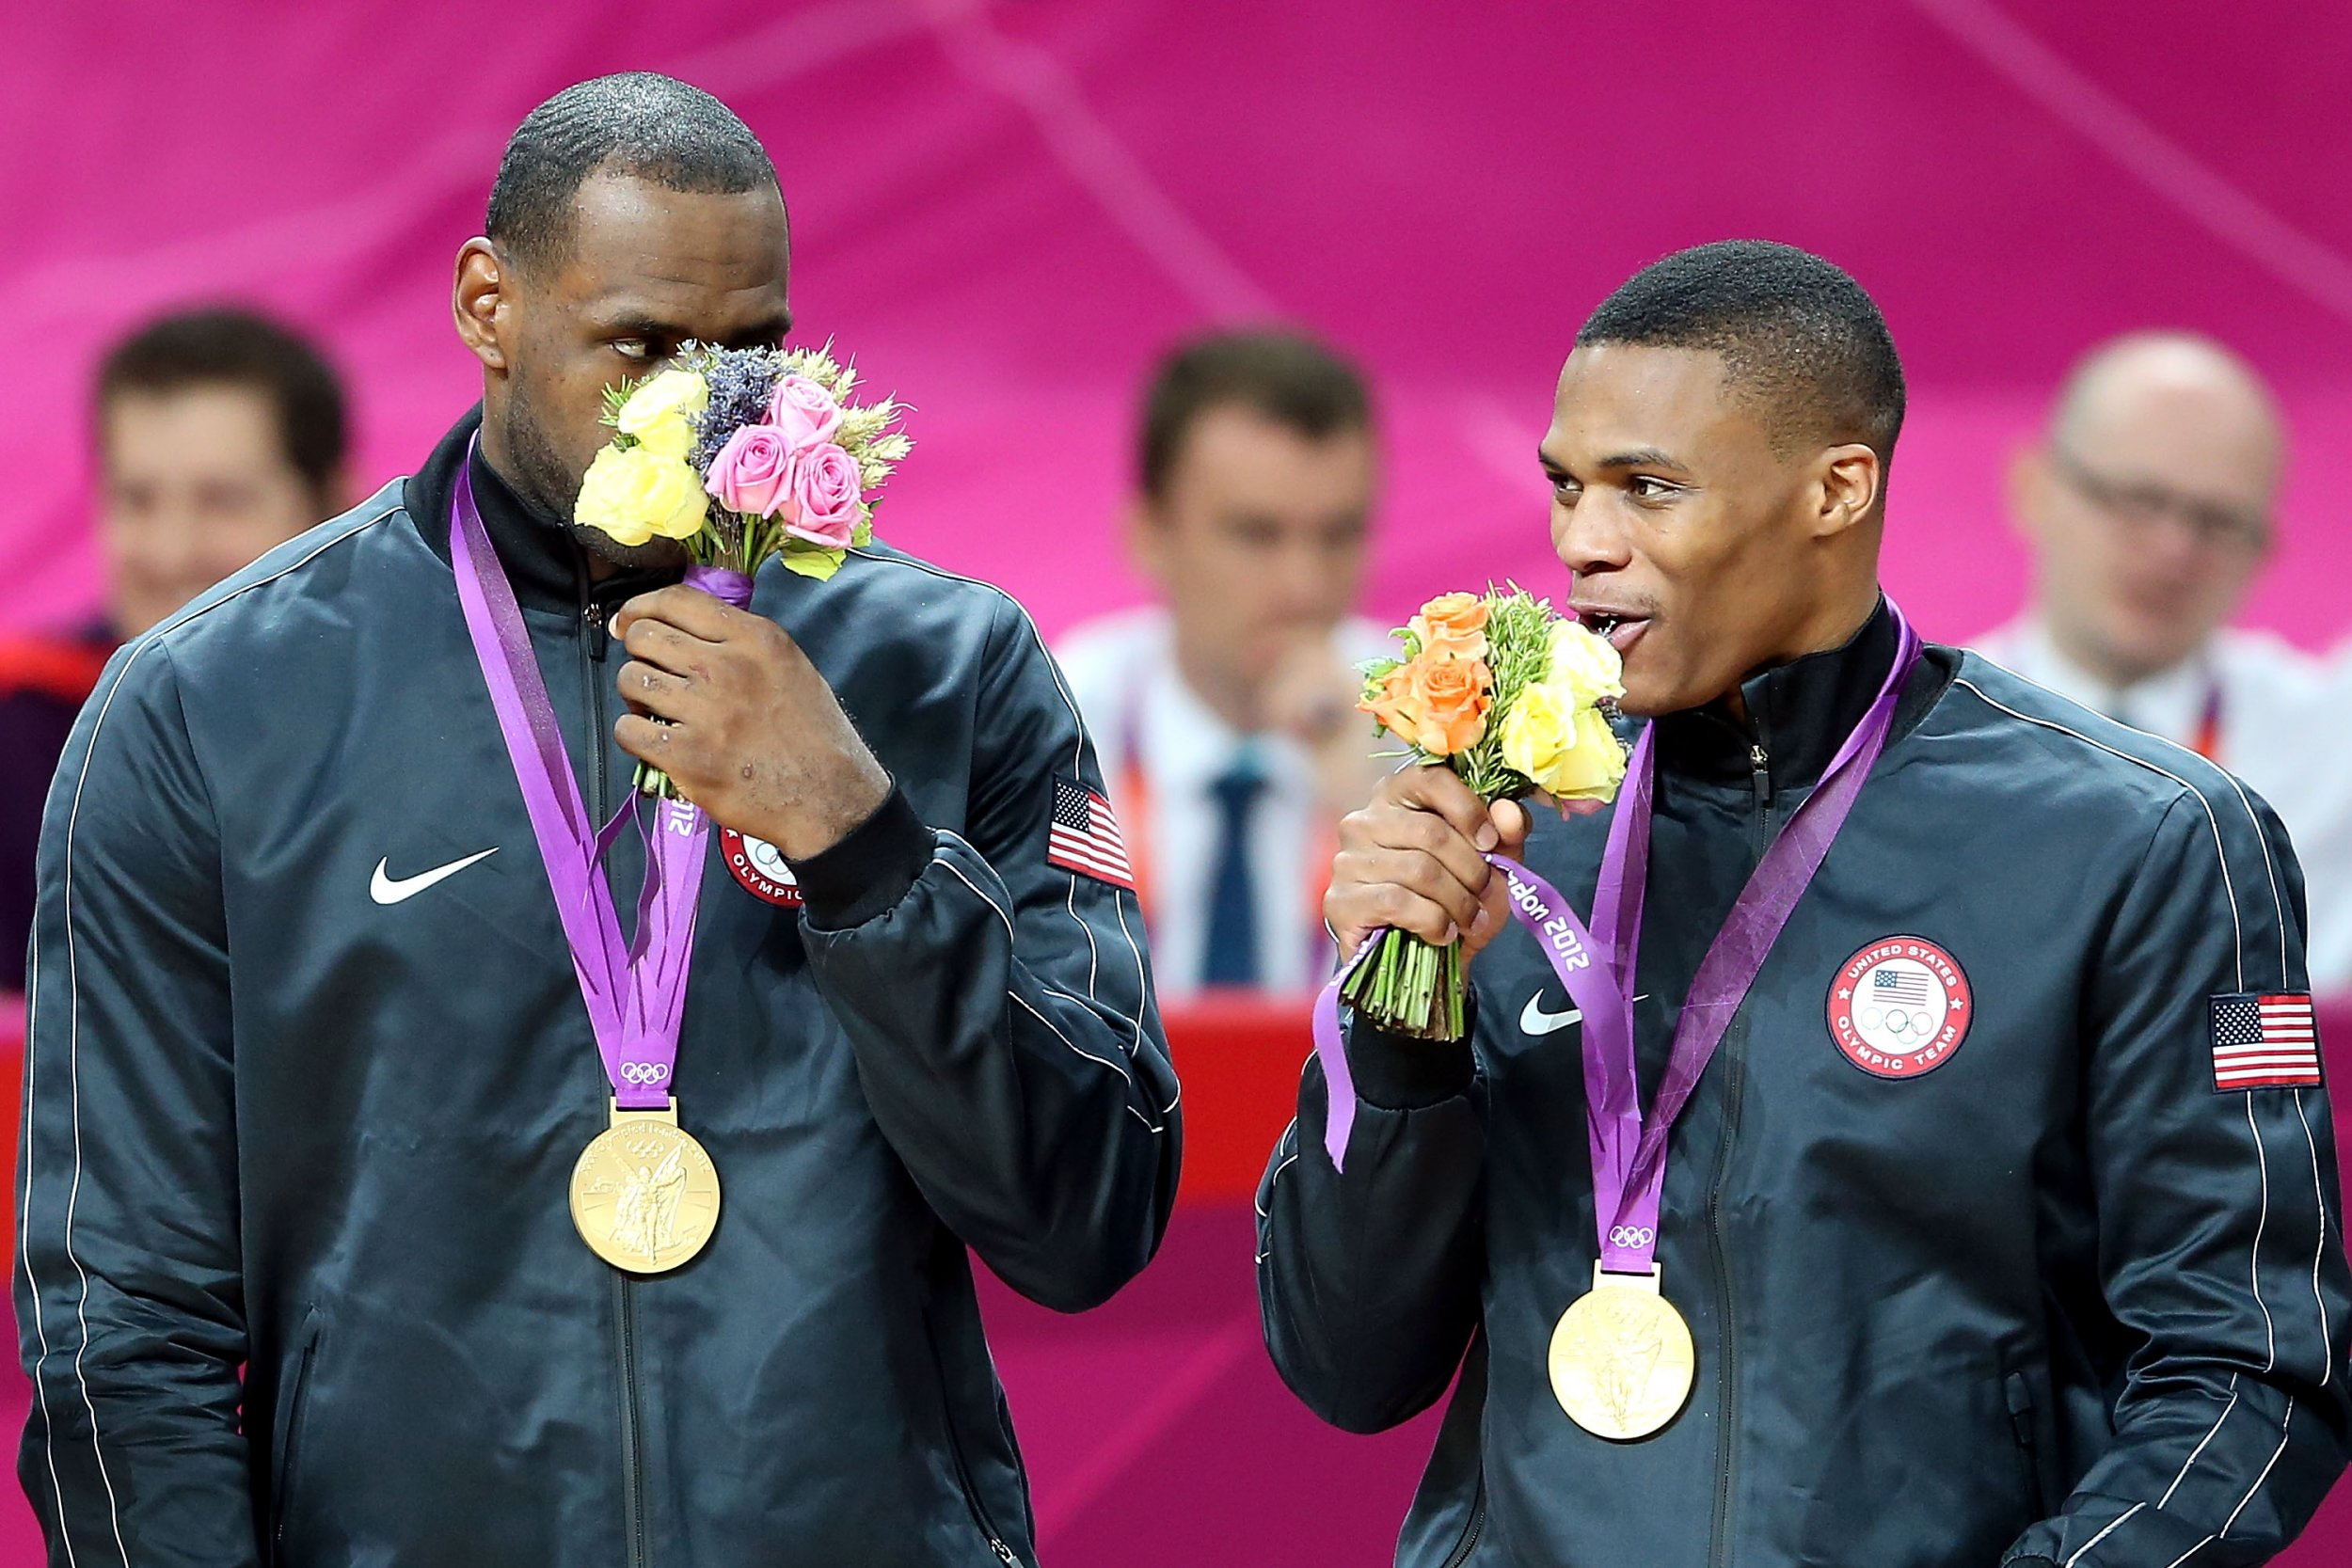 LeBron James and Russell Westbrook of the United States in London, England, August 12 2012.